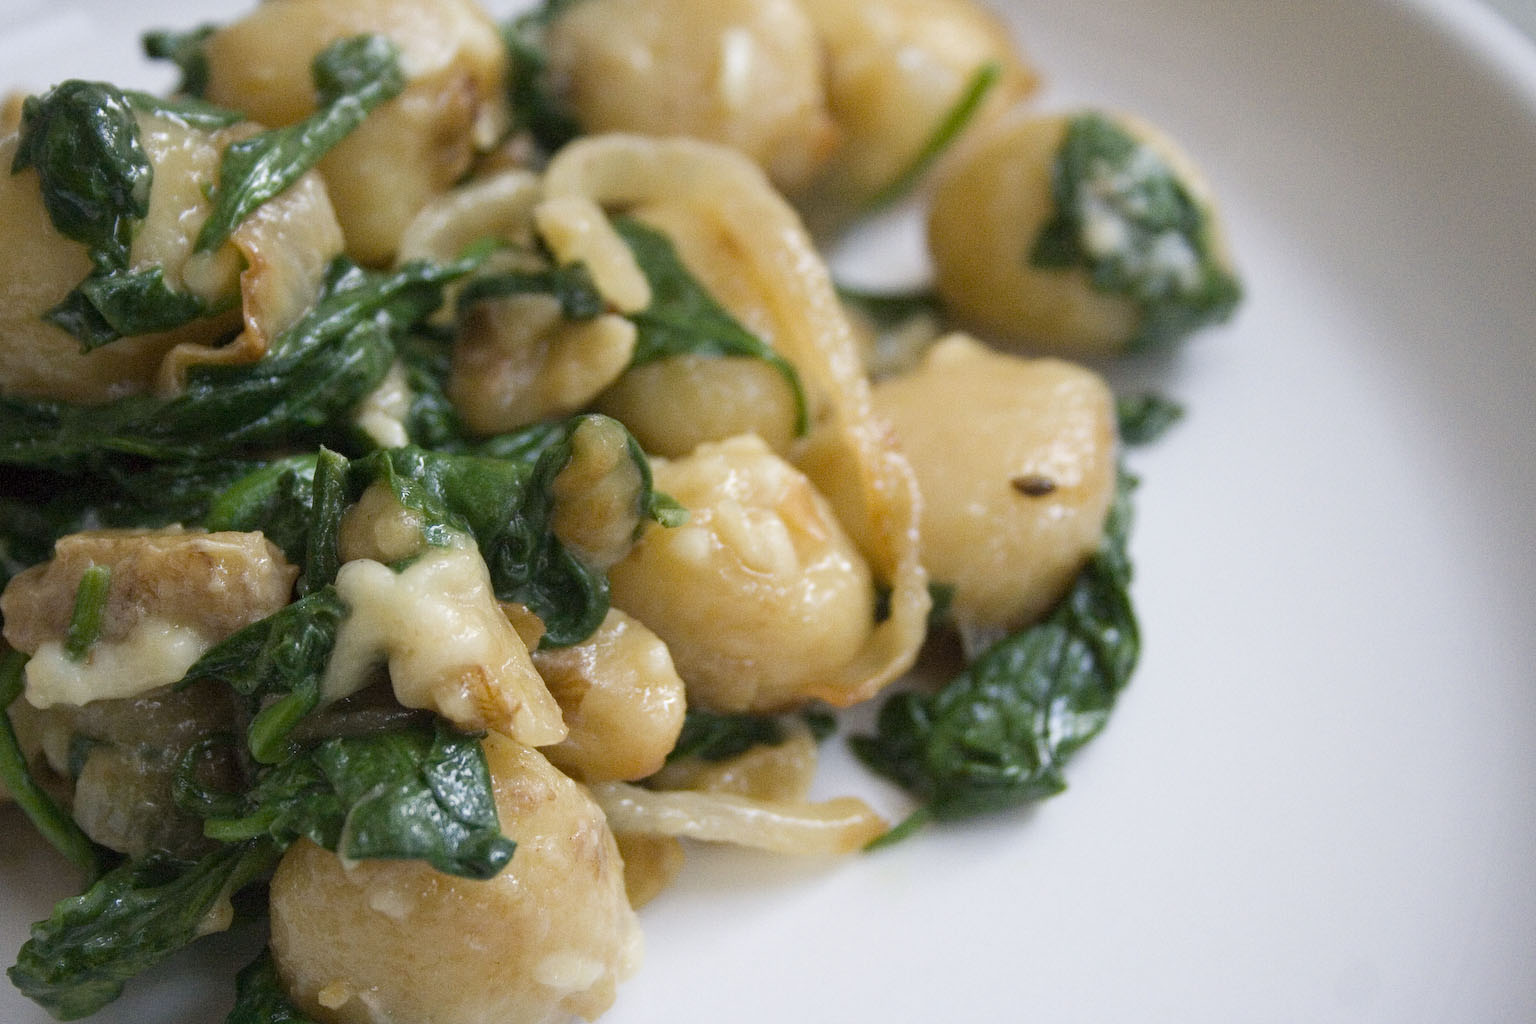 Nutmeg Gnocchi Cooking with Trader Joe's